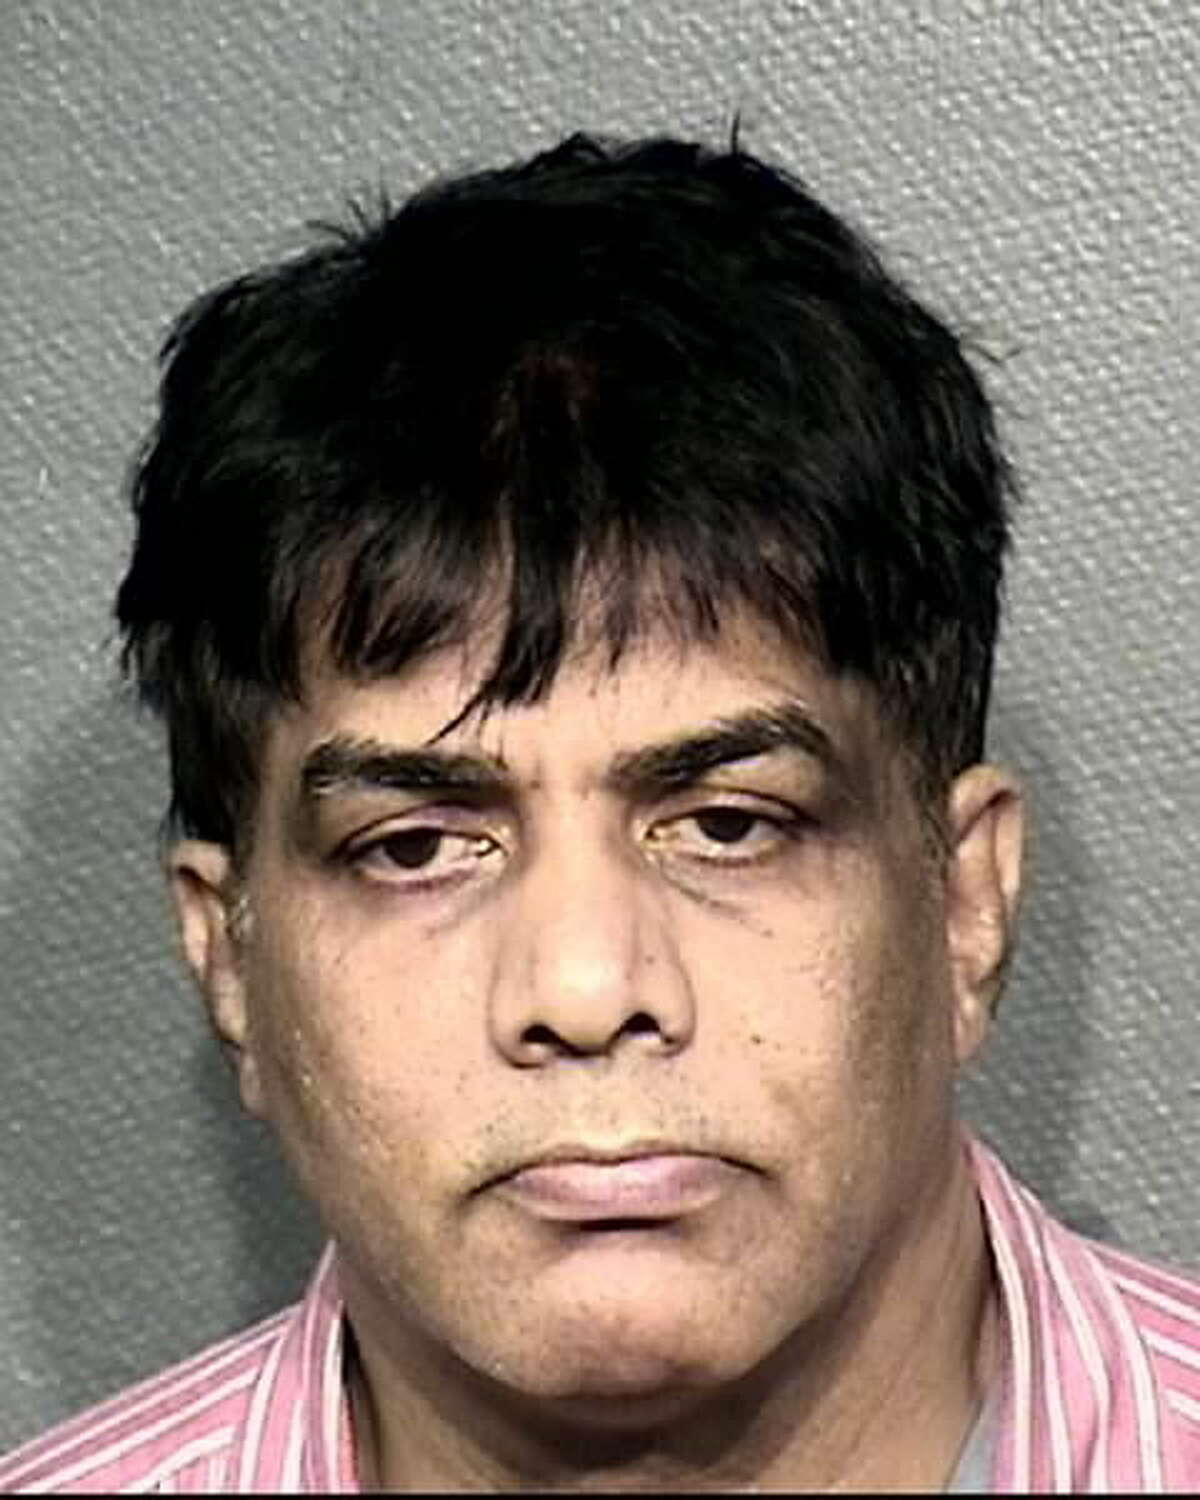 Abdullah Shah was one of 69 suspects arrested by the Houston Police Department and charged with either compelling prostitution or soliciting prostitution during the months of June and July 2018.